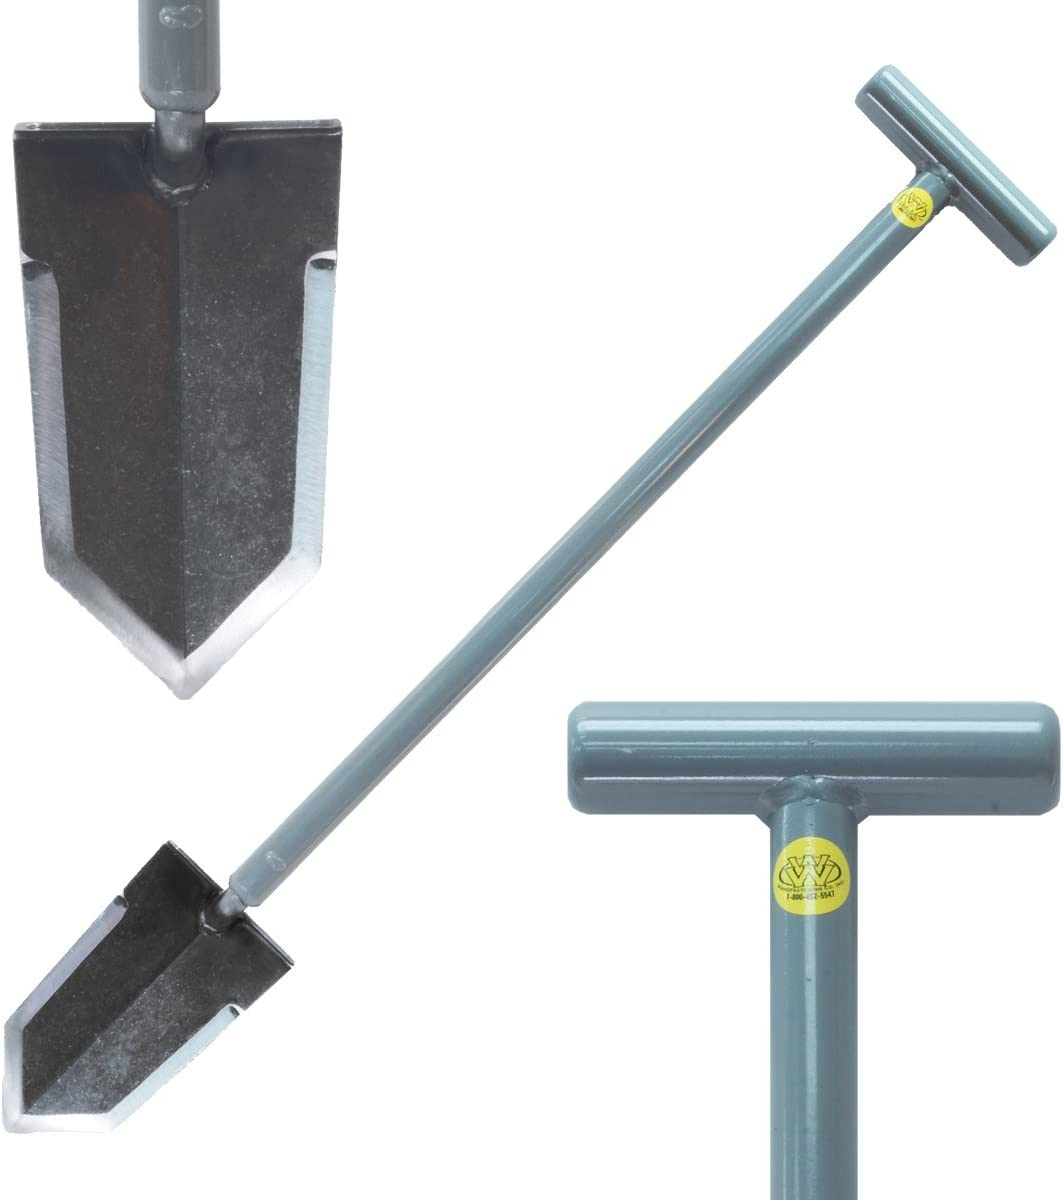 Lesche Sampson Pro-Series Shovel with T-Handle for Metal Detecting and Gardening